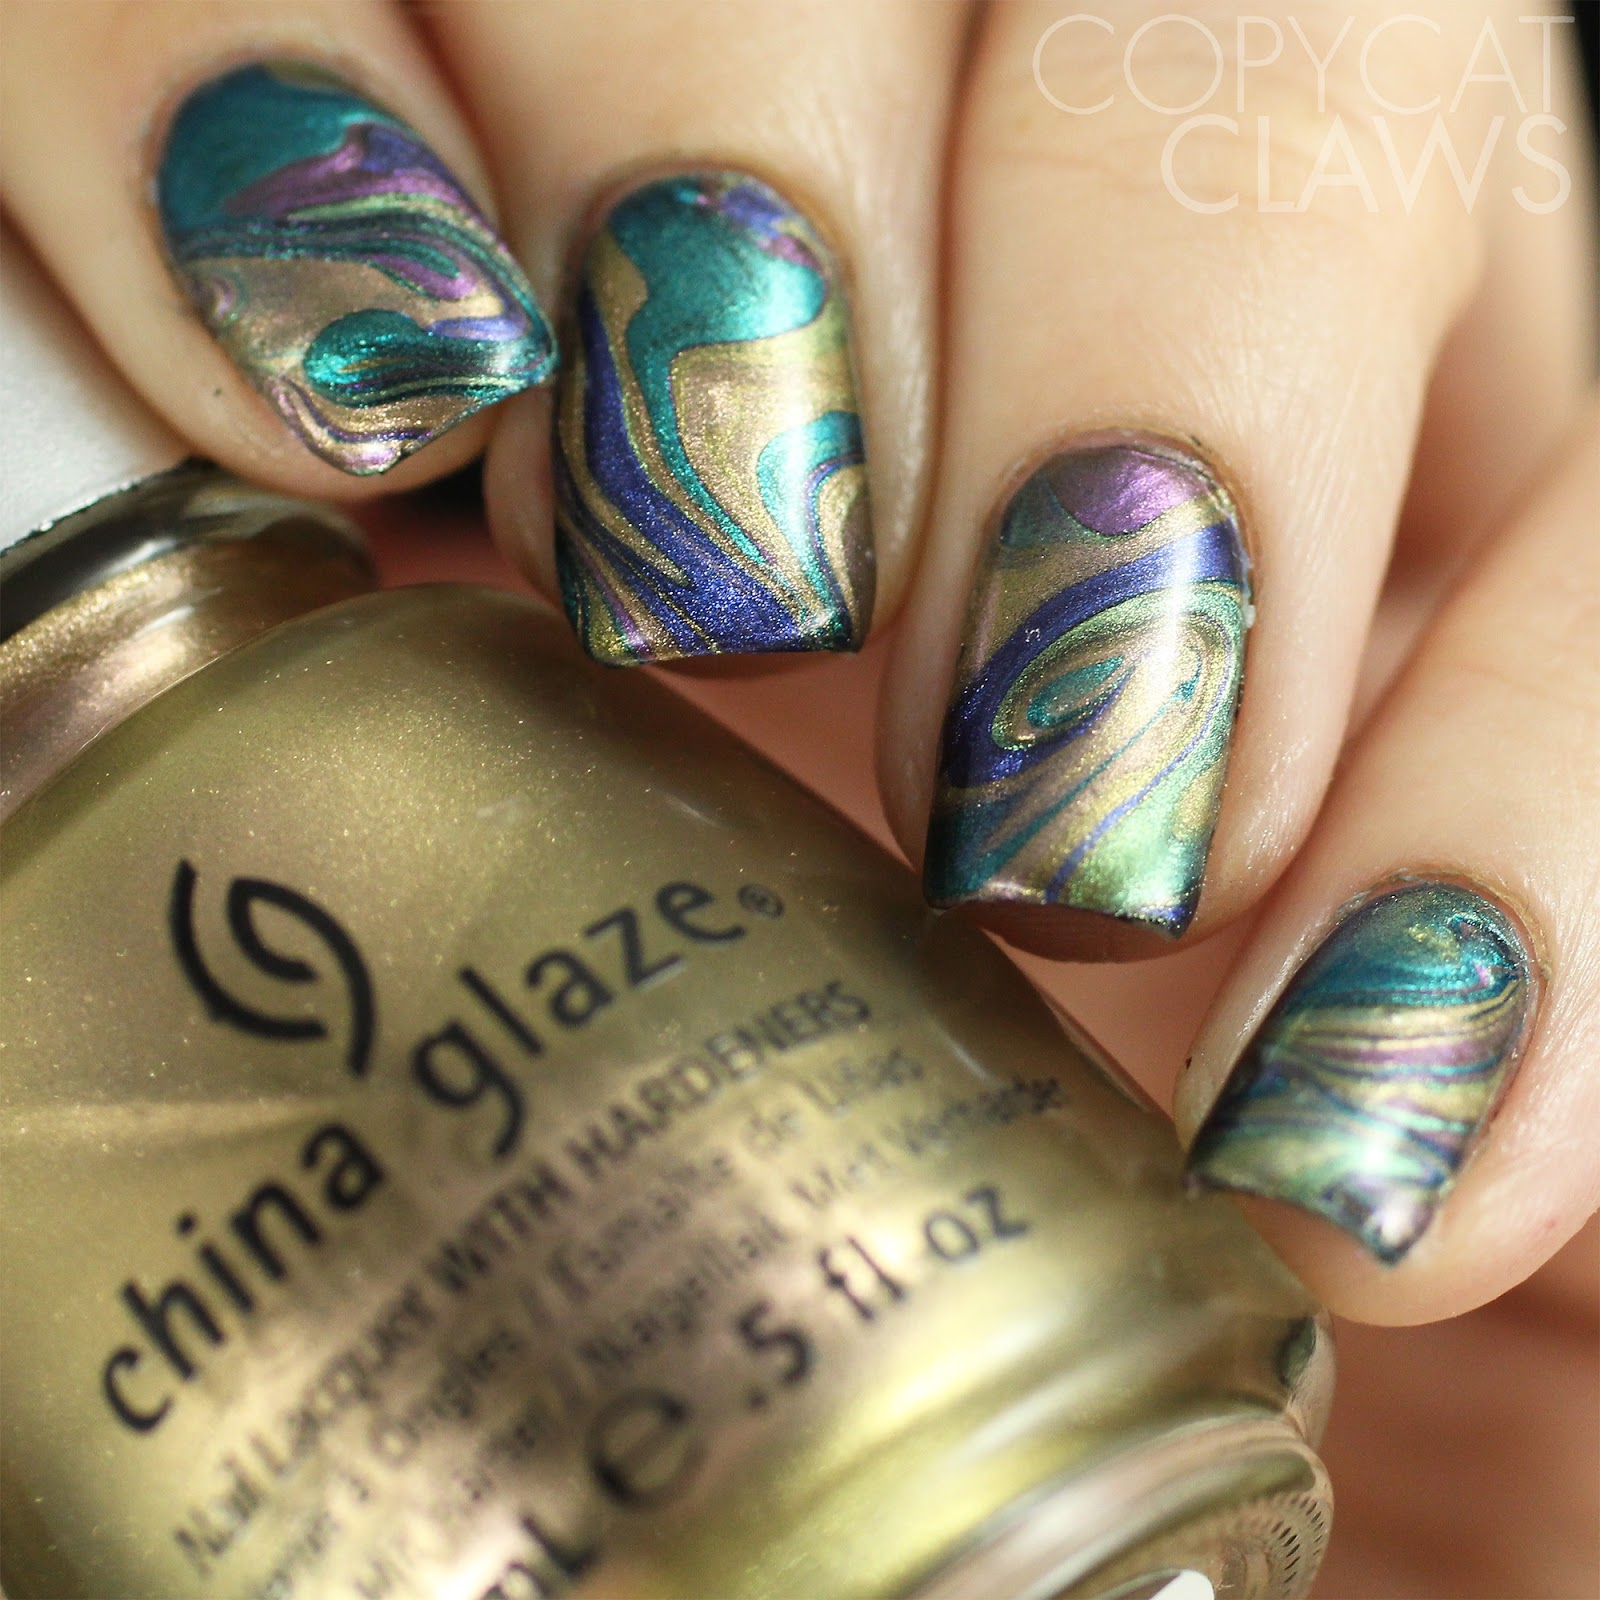 Copycat Claws: Oil Slick Drip Marble Nails